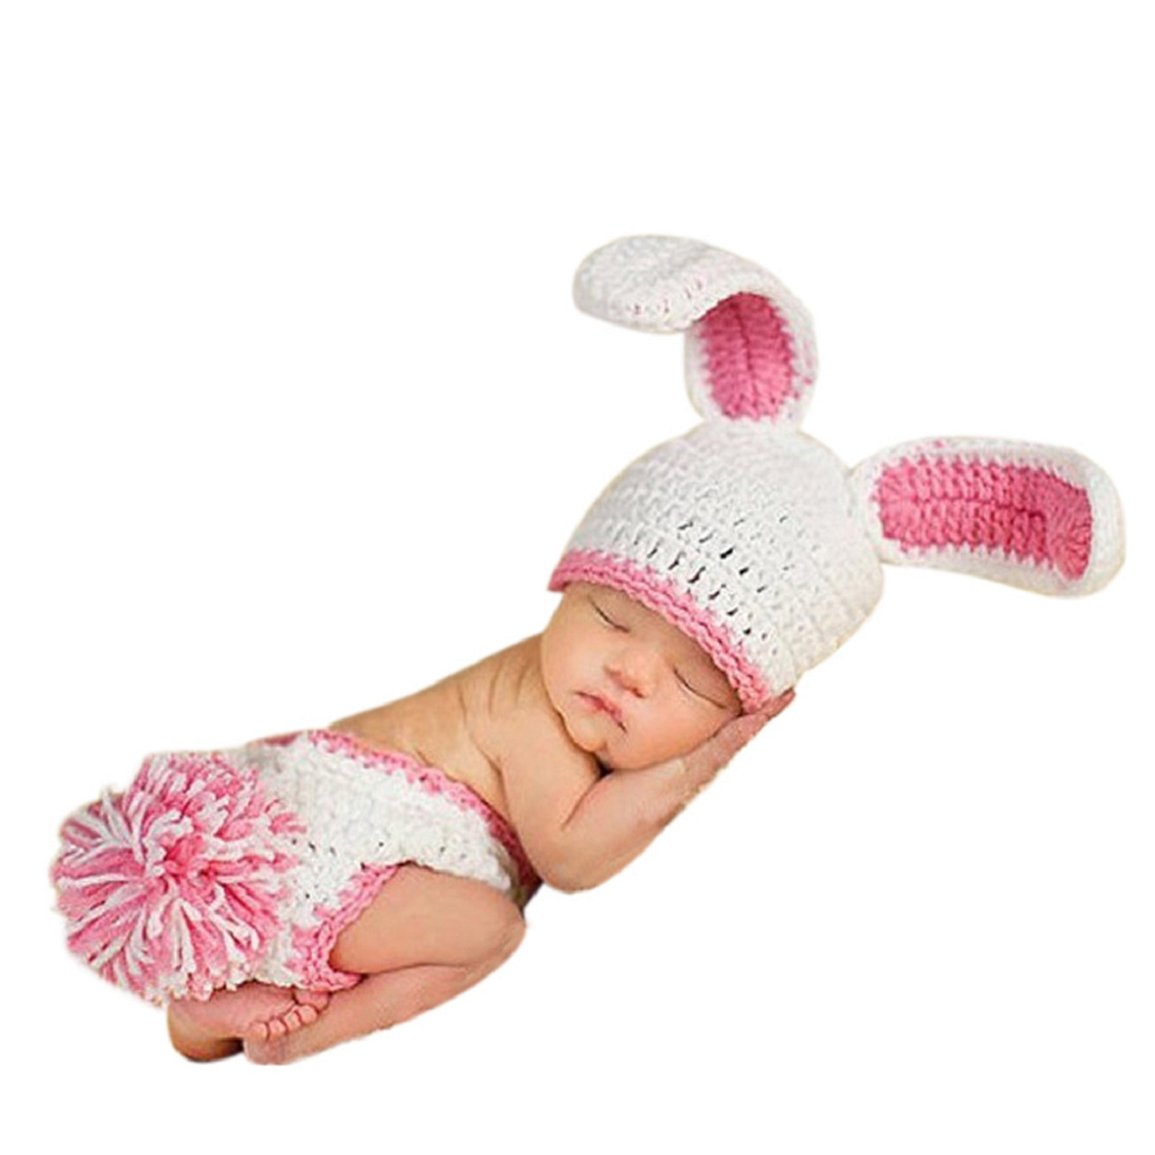 Changeshopping Infant Outfit Crochet Knitted Cap Costume Photography Prop Changeshopping 545